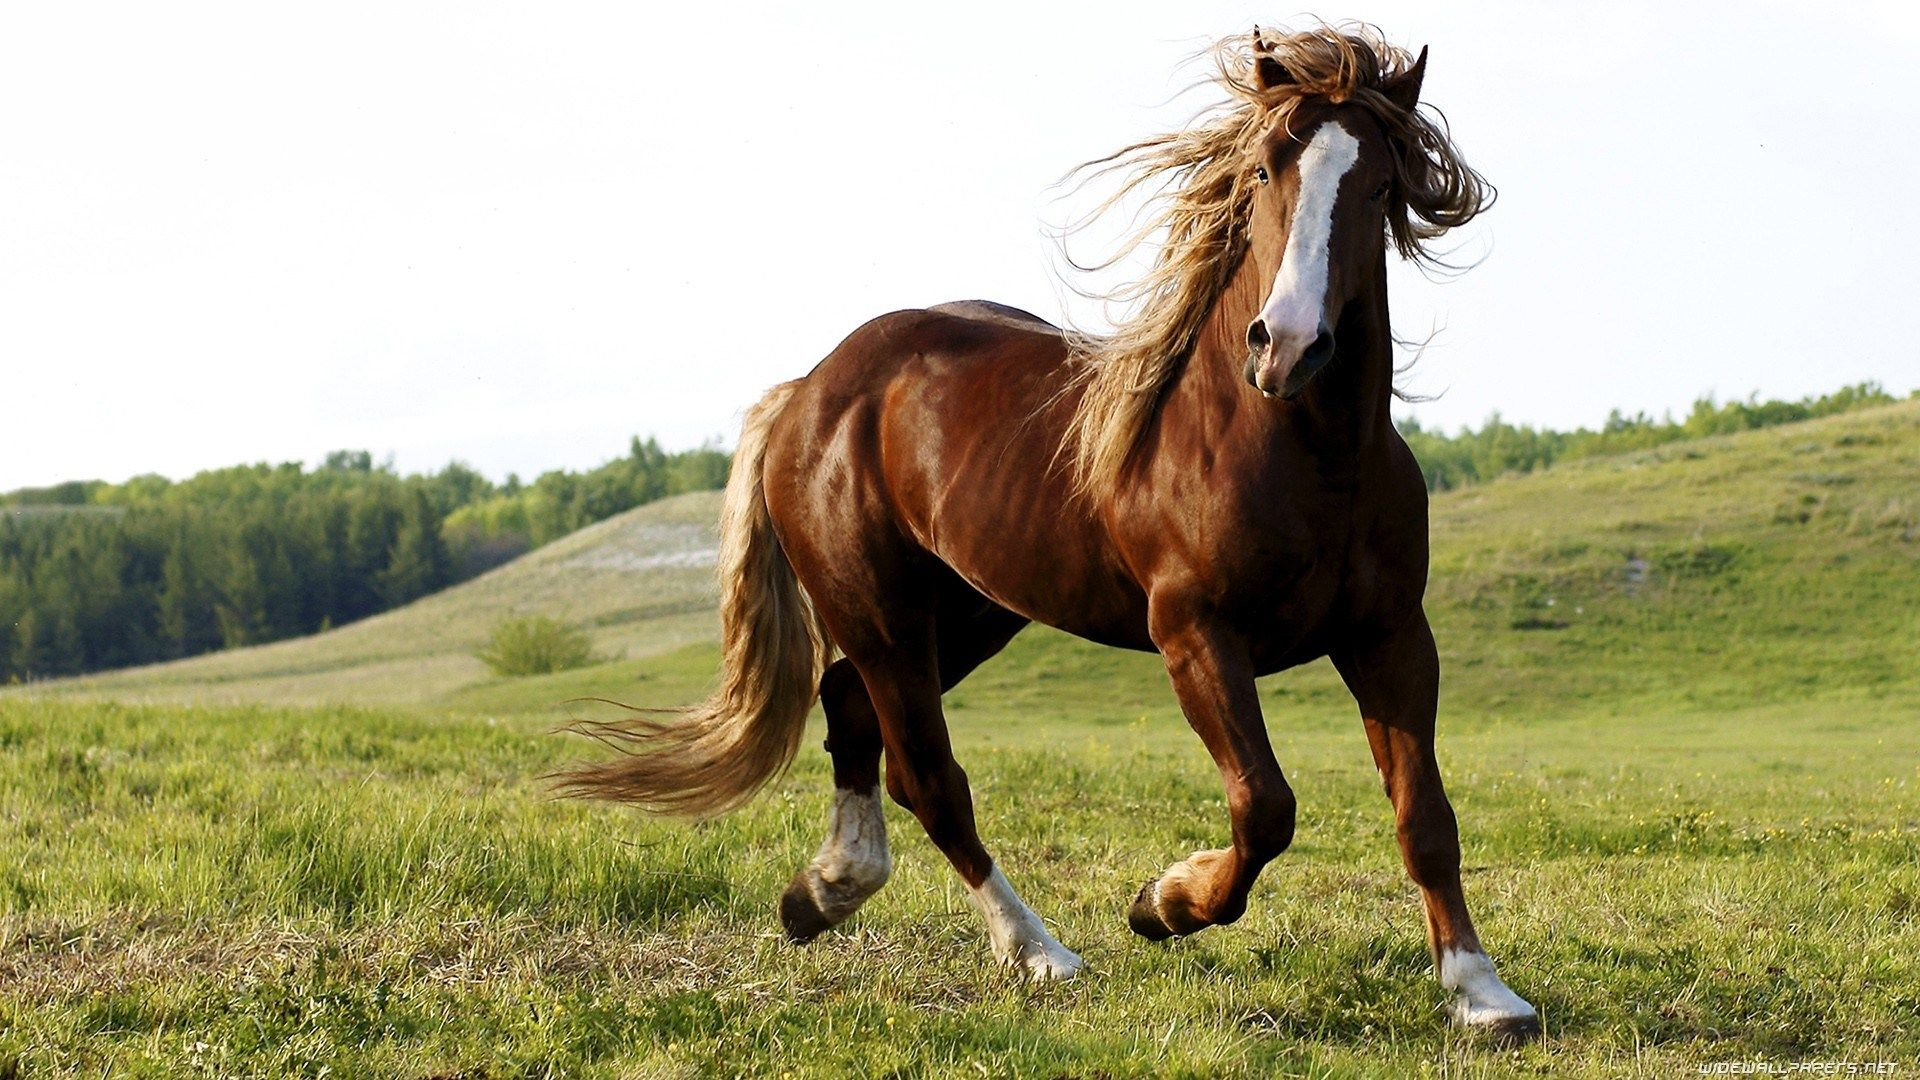 Cool Wallpaper Horse Android Phone - 2e10a92852c4d9c6b64d2a8735988267  You Should Have_475858.jpg